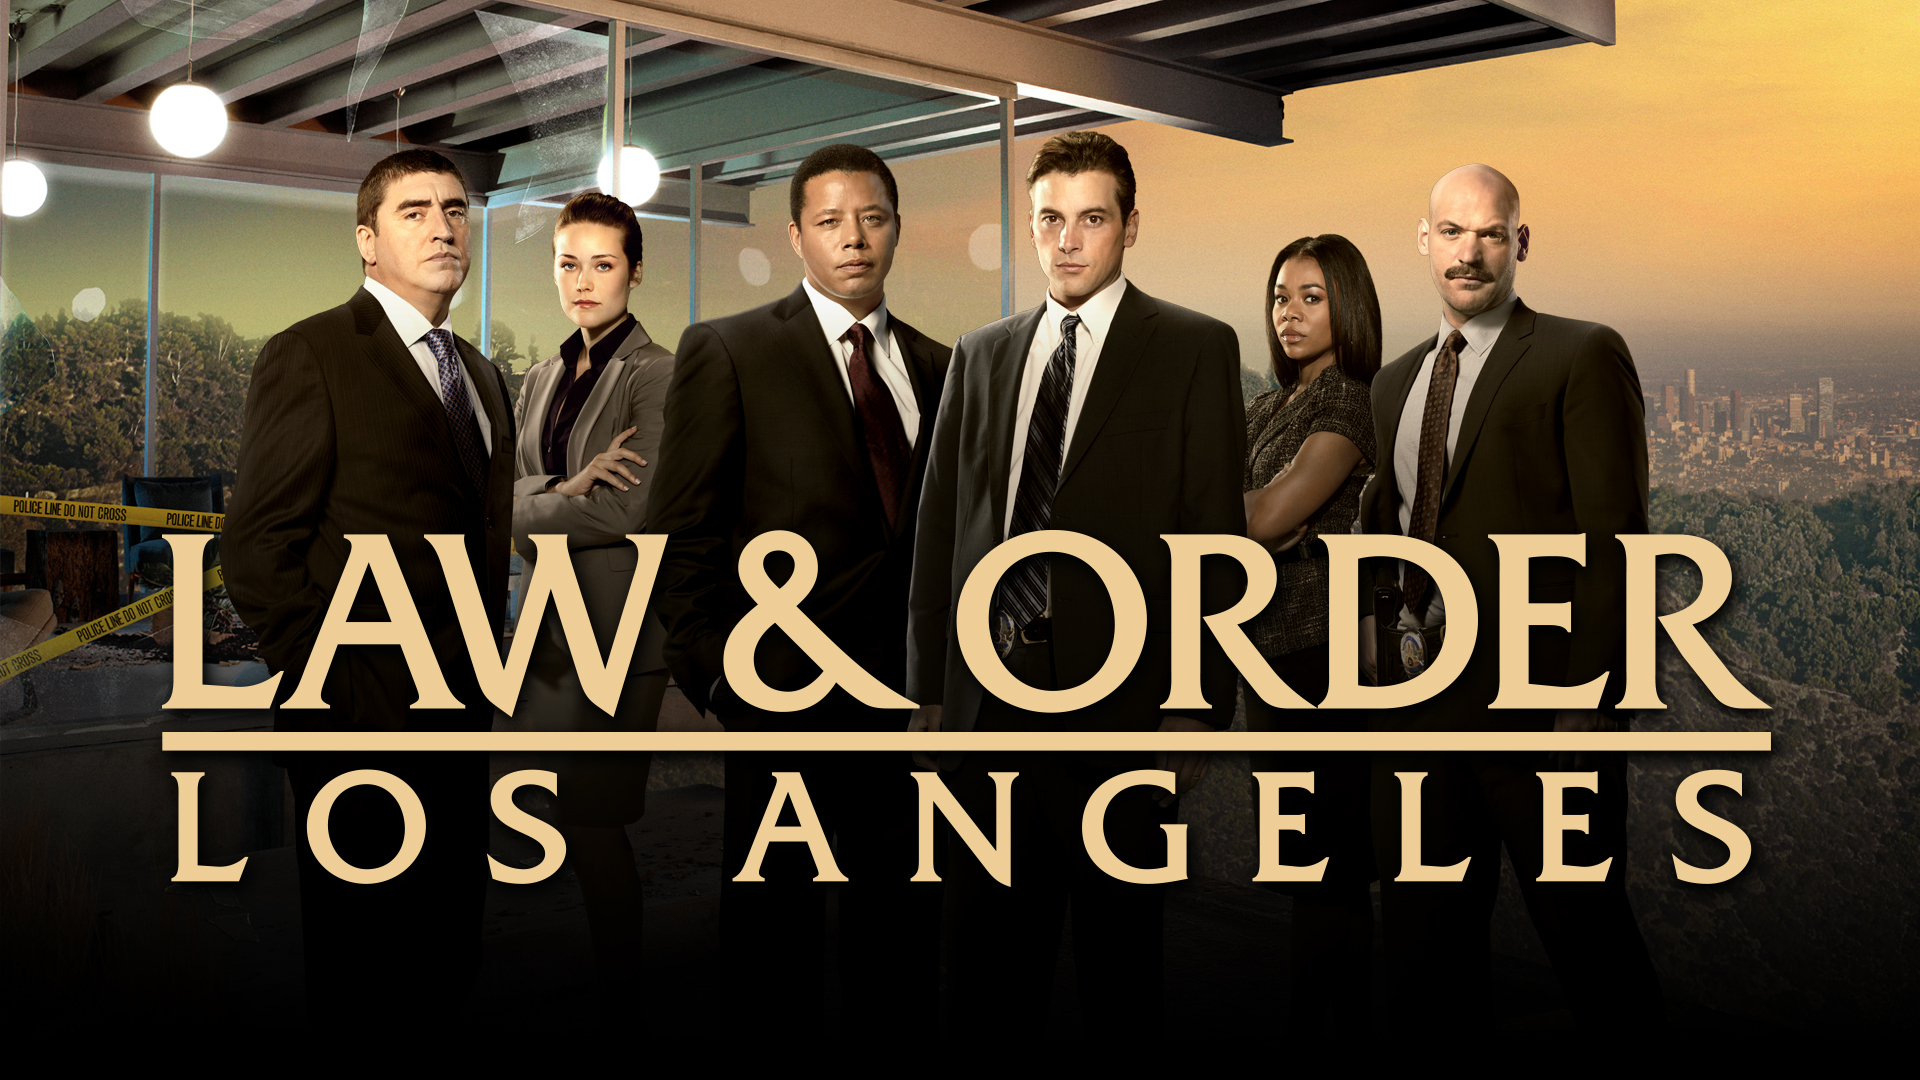 Watch Law Amp Order Los Angeles Episodes